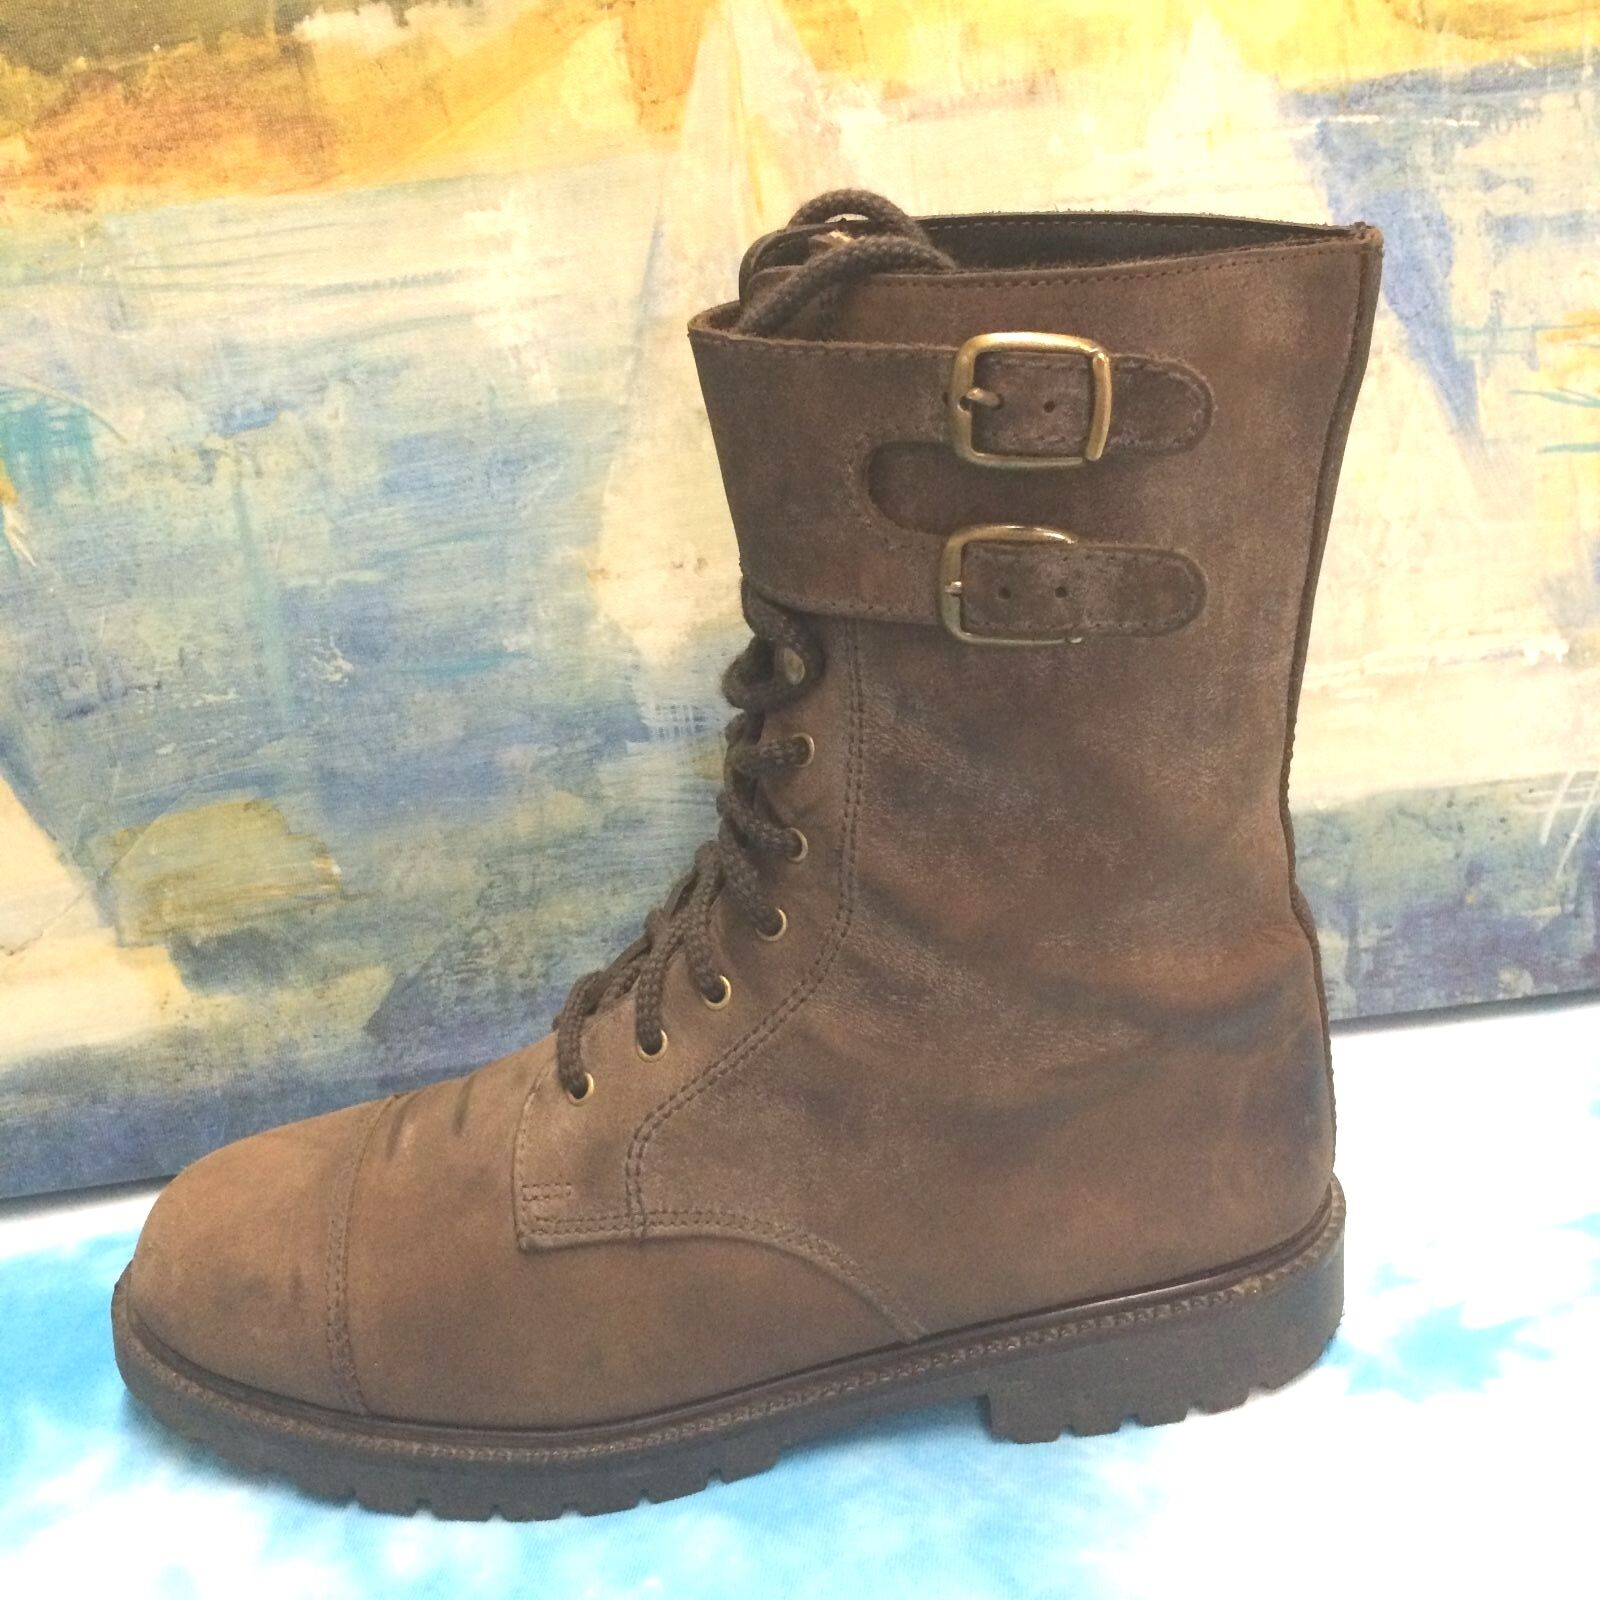 CANADA NORTH brown leather fleece insulated campus riding  dress boots 9.5 M